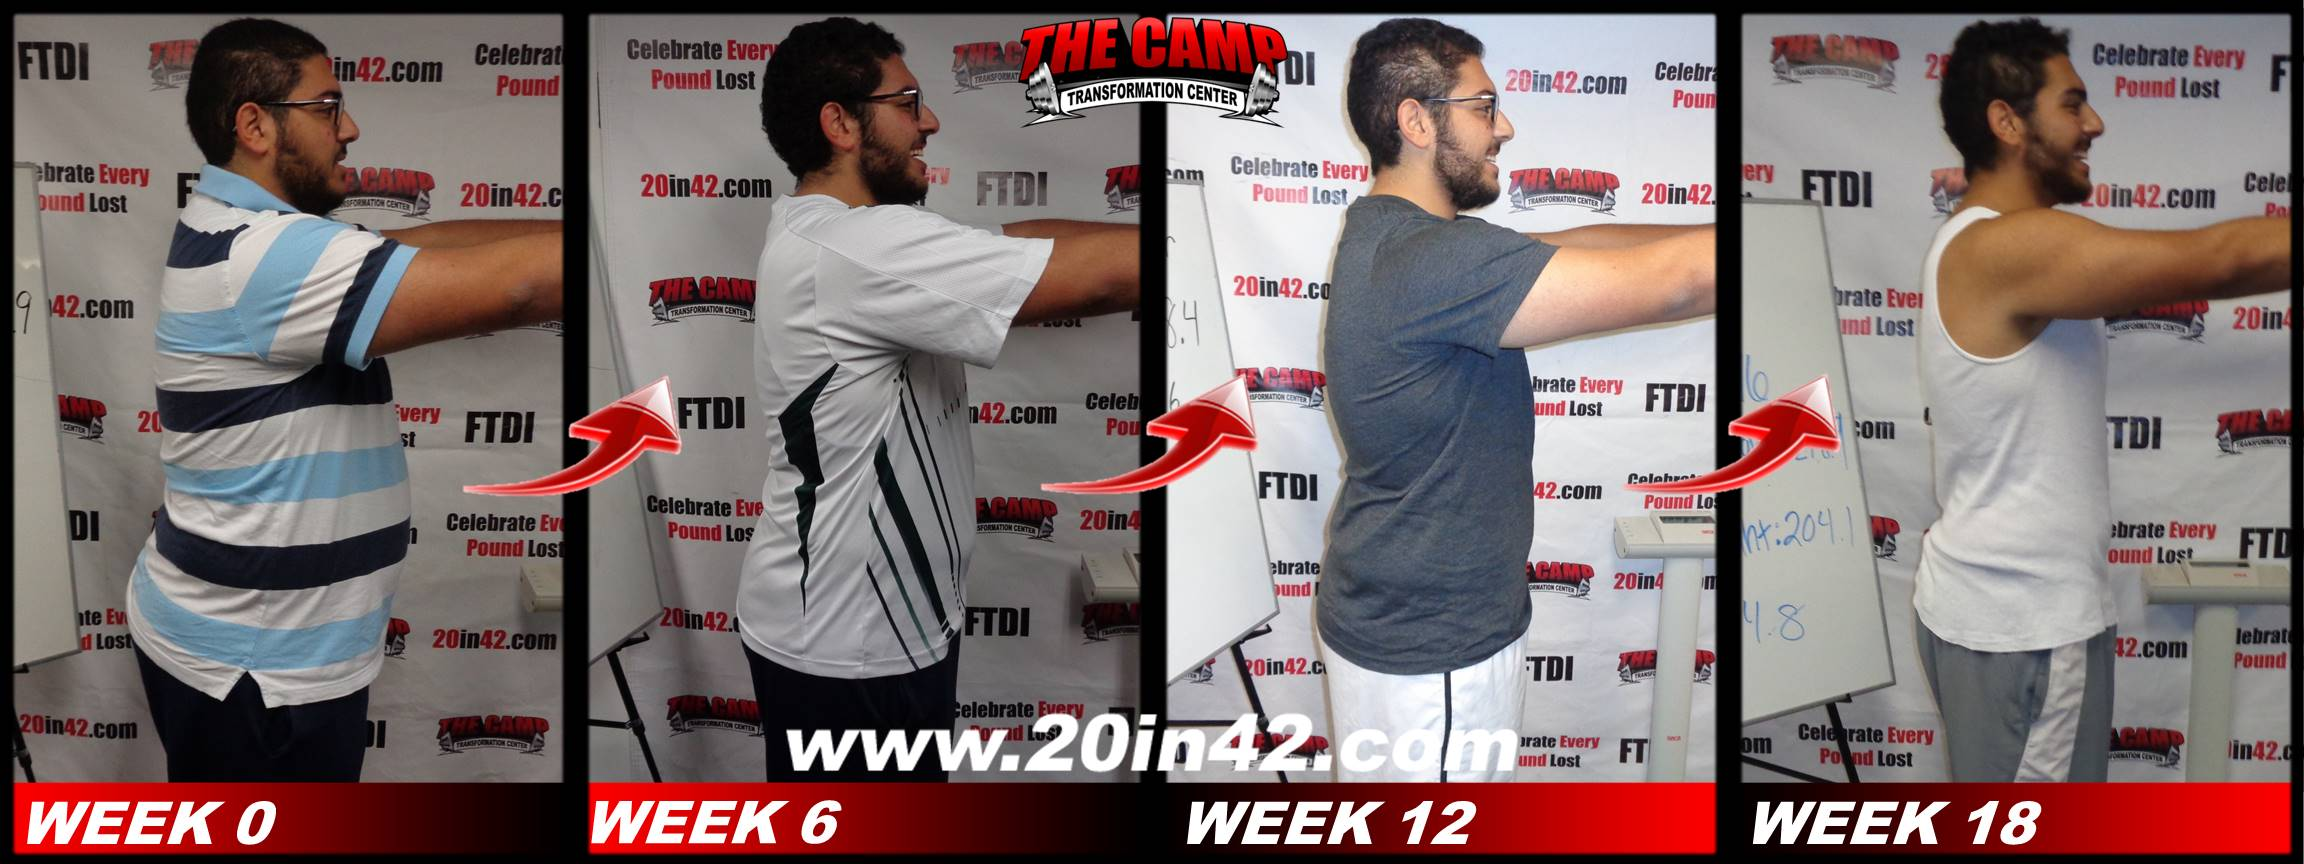 four pictures of the same man shown in previous photo, in profile view, comparing his weight loss after 6 weeks, 12 weeks, and 18 weeks in the weight loss challenge program